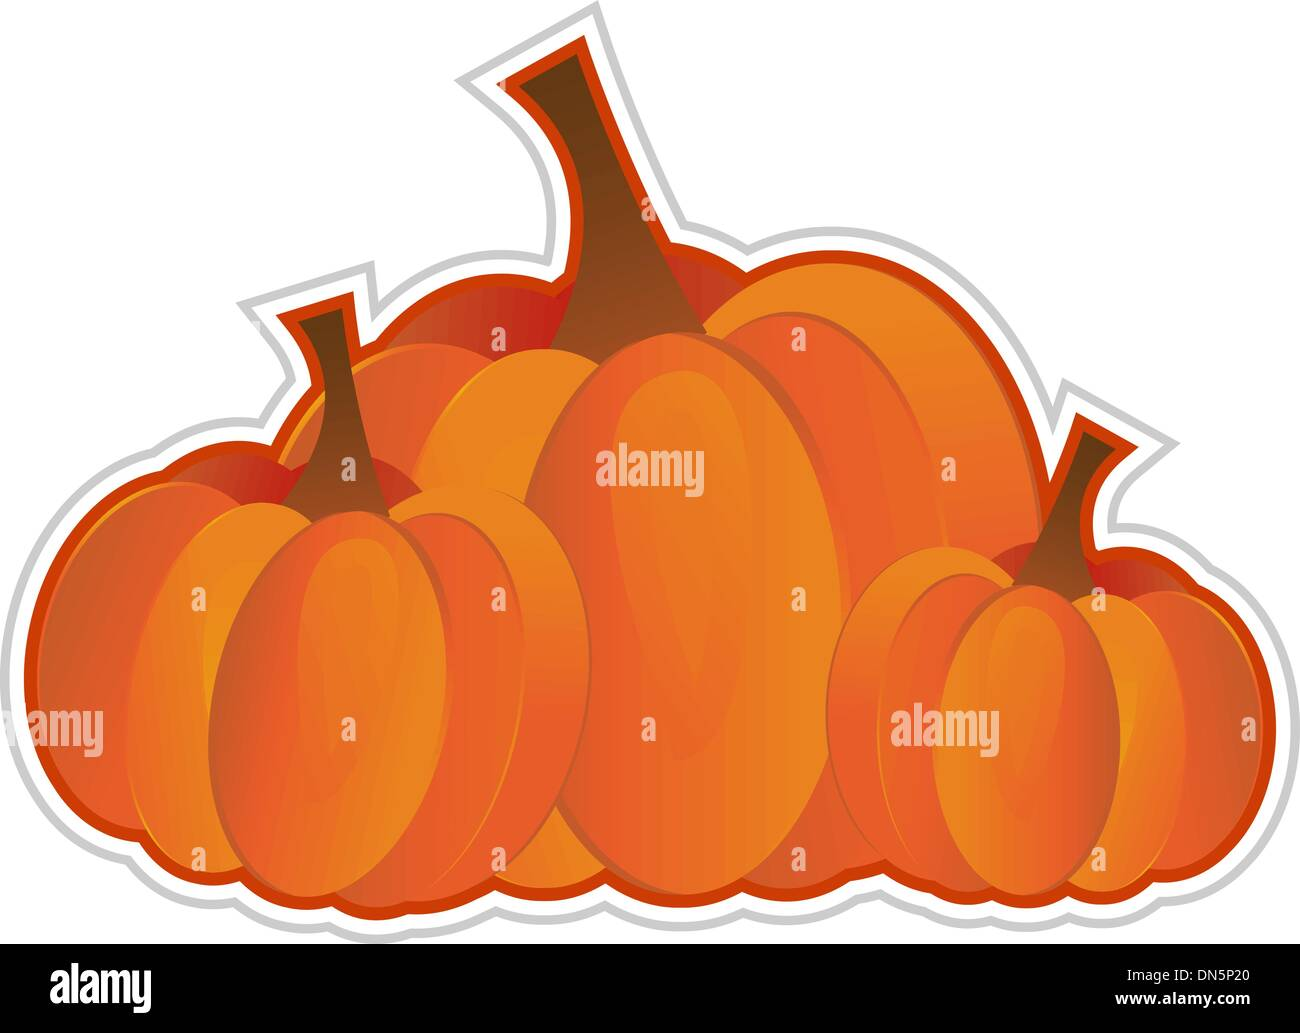 Pumpkins - Stock Vector